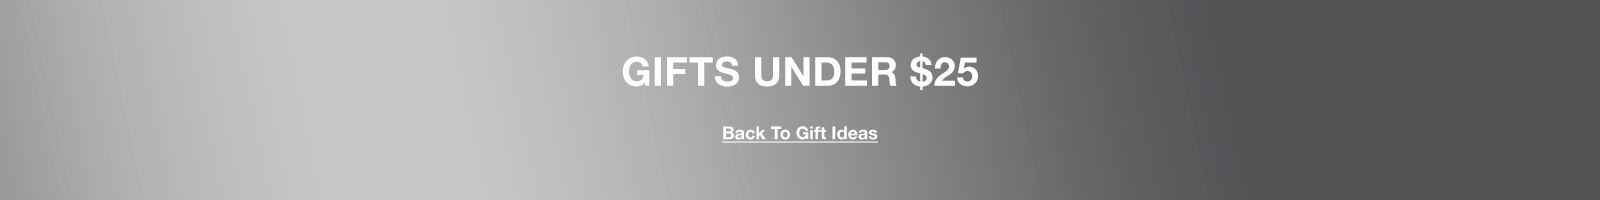 Gifts Under $25, Back To Gift Ideas